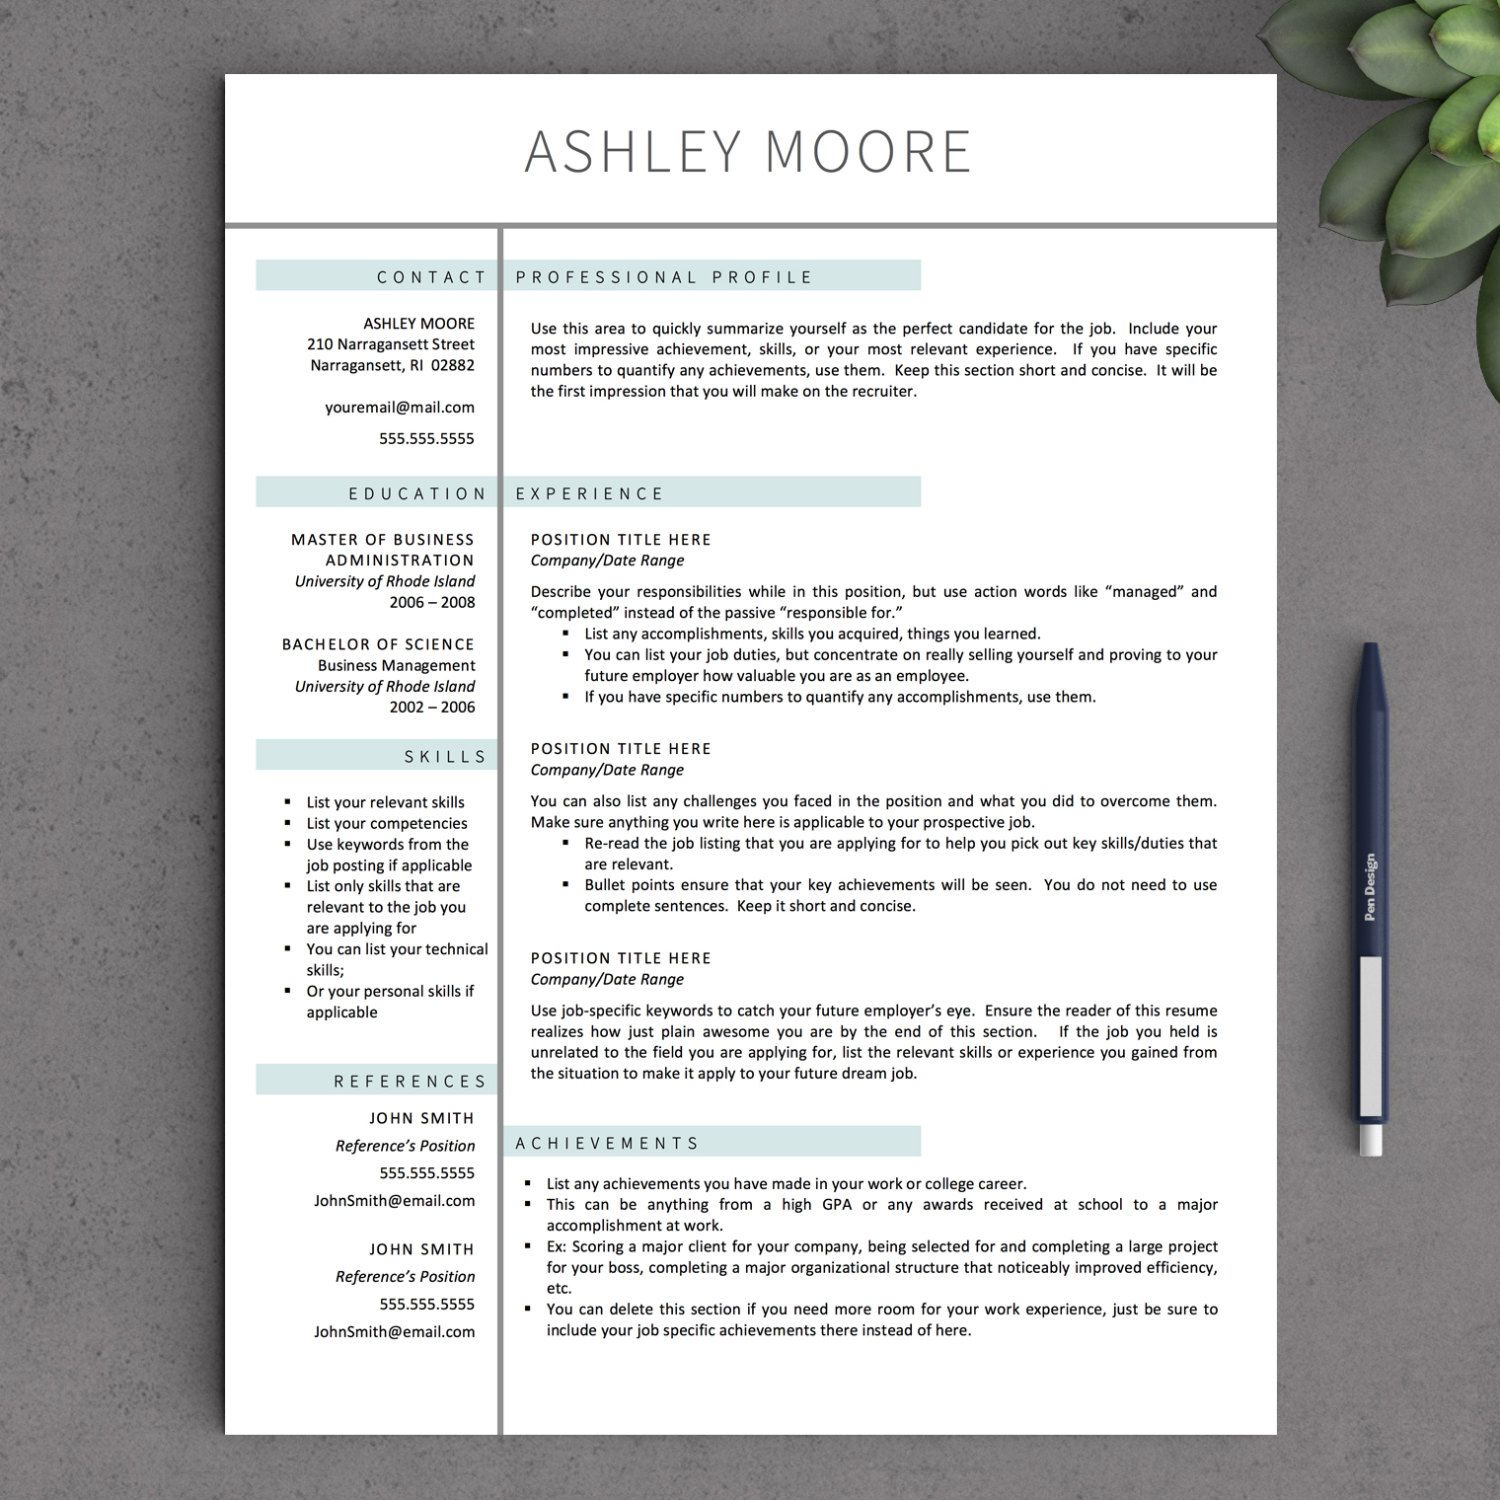 apple pages resume template download apple pages resume template download apple pages resume templates free - Free Resume Templates For Pages